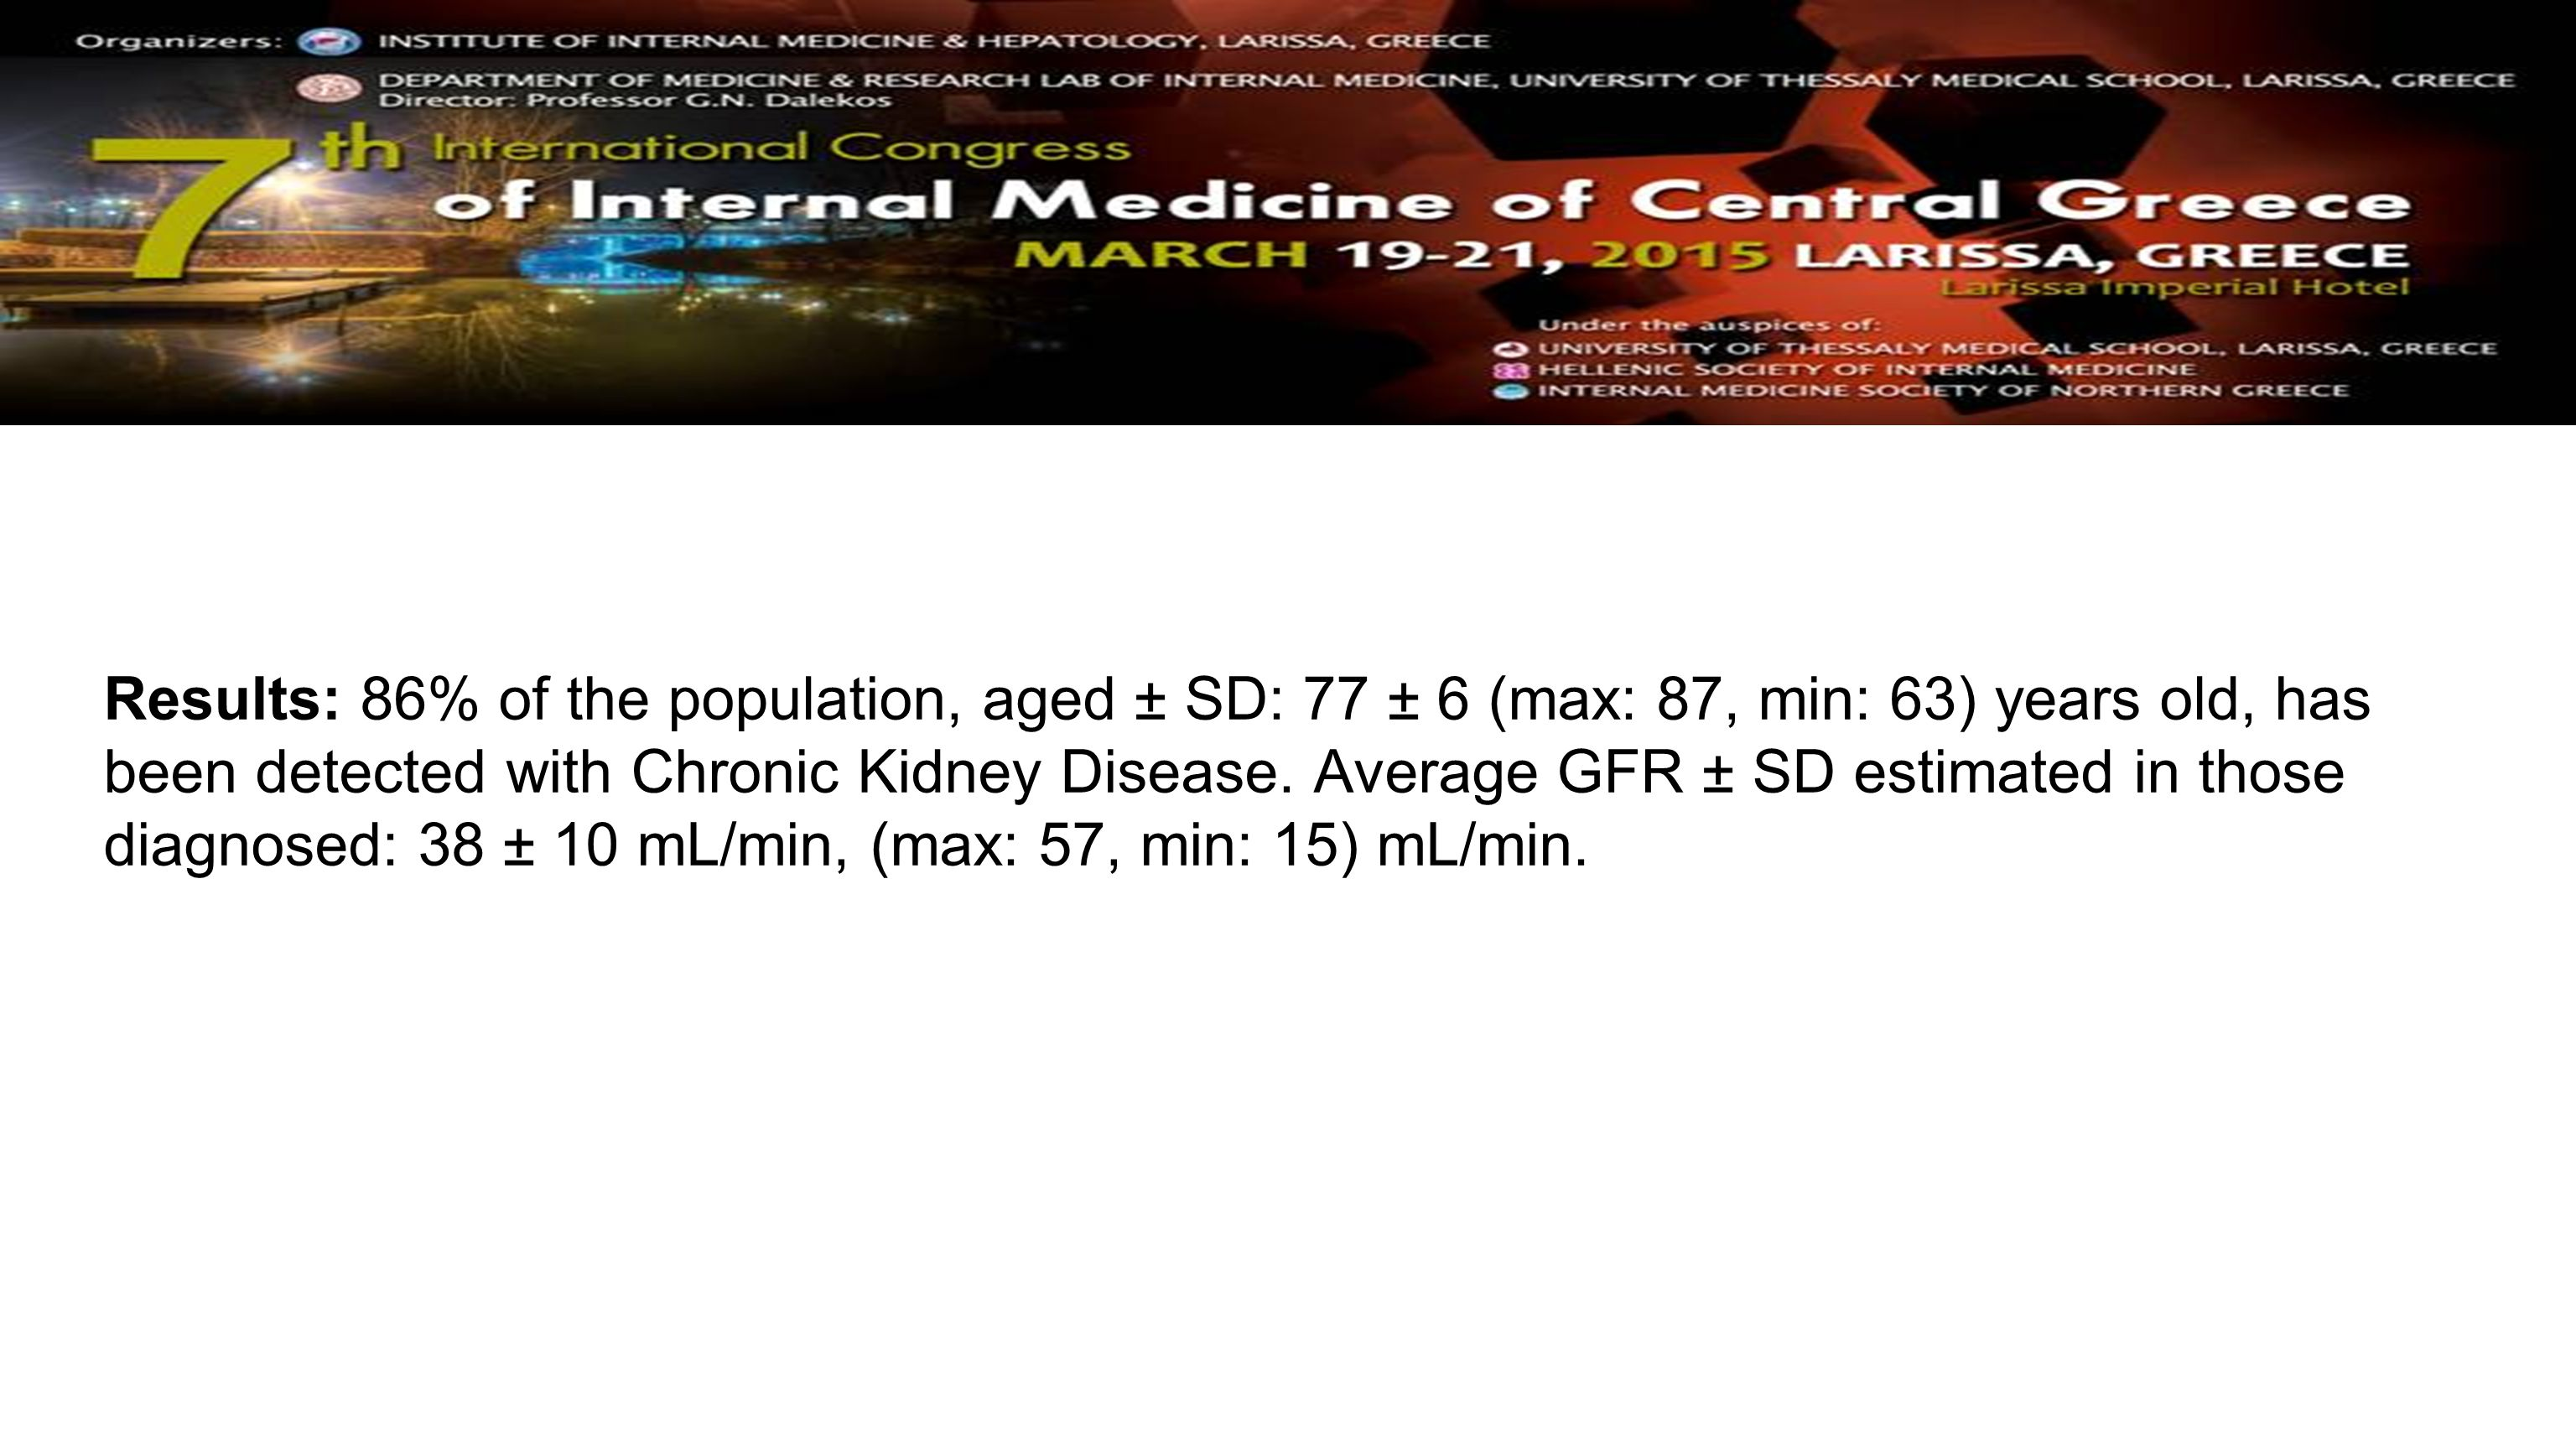 Results: 86% of the population, aged ± SD: 77 ± 6 (max: 87, min: 63) years old, has been detected with Chronic Kidney Disease.